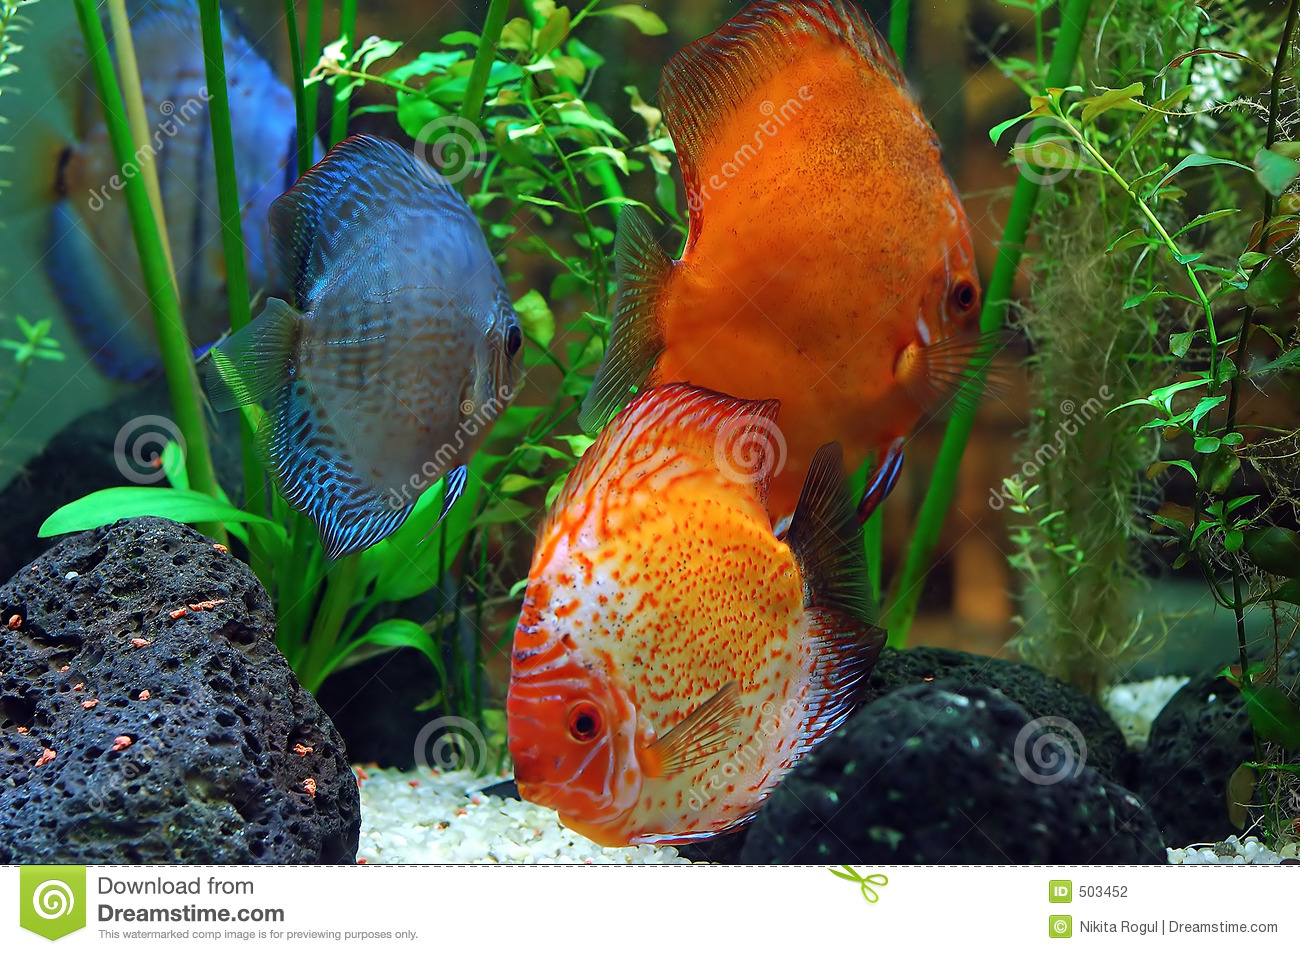 Diskus fish stock photography image 503452 for Diskus aquarium